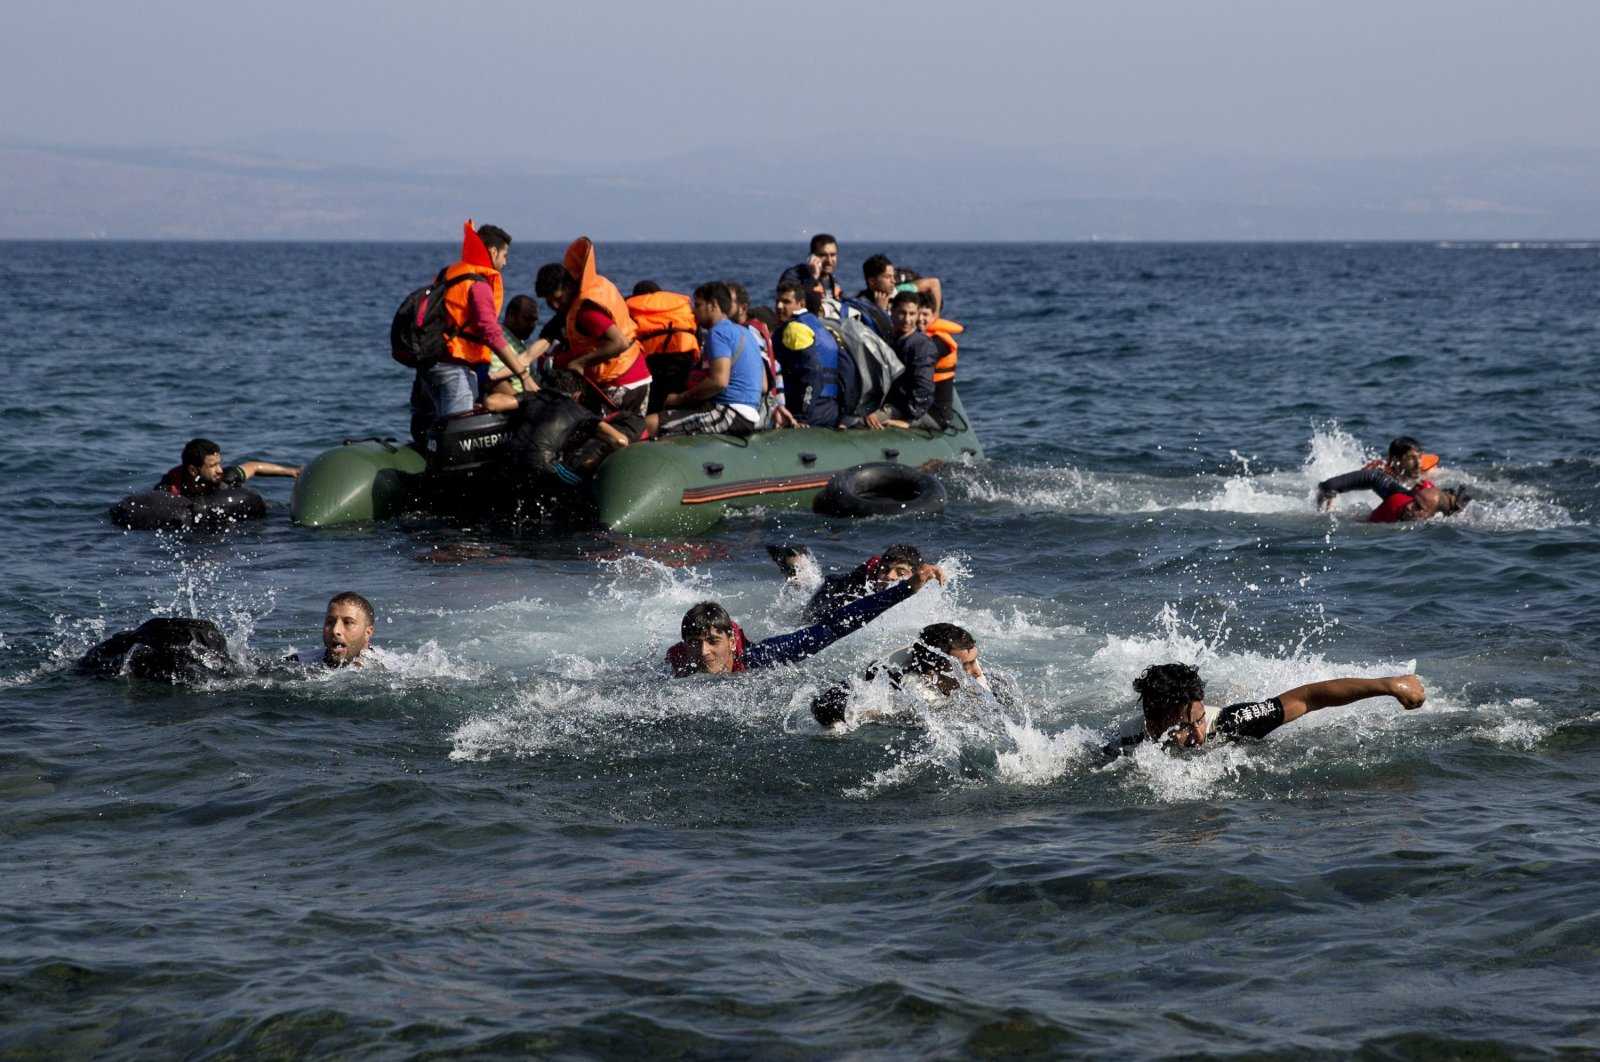 Migrants whose boat stalled at sea while crossing from Turkey to Greece swim toward the shore of the island of Lesbos, Greece, Sept. 20, 2015. (AP Photo)